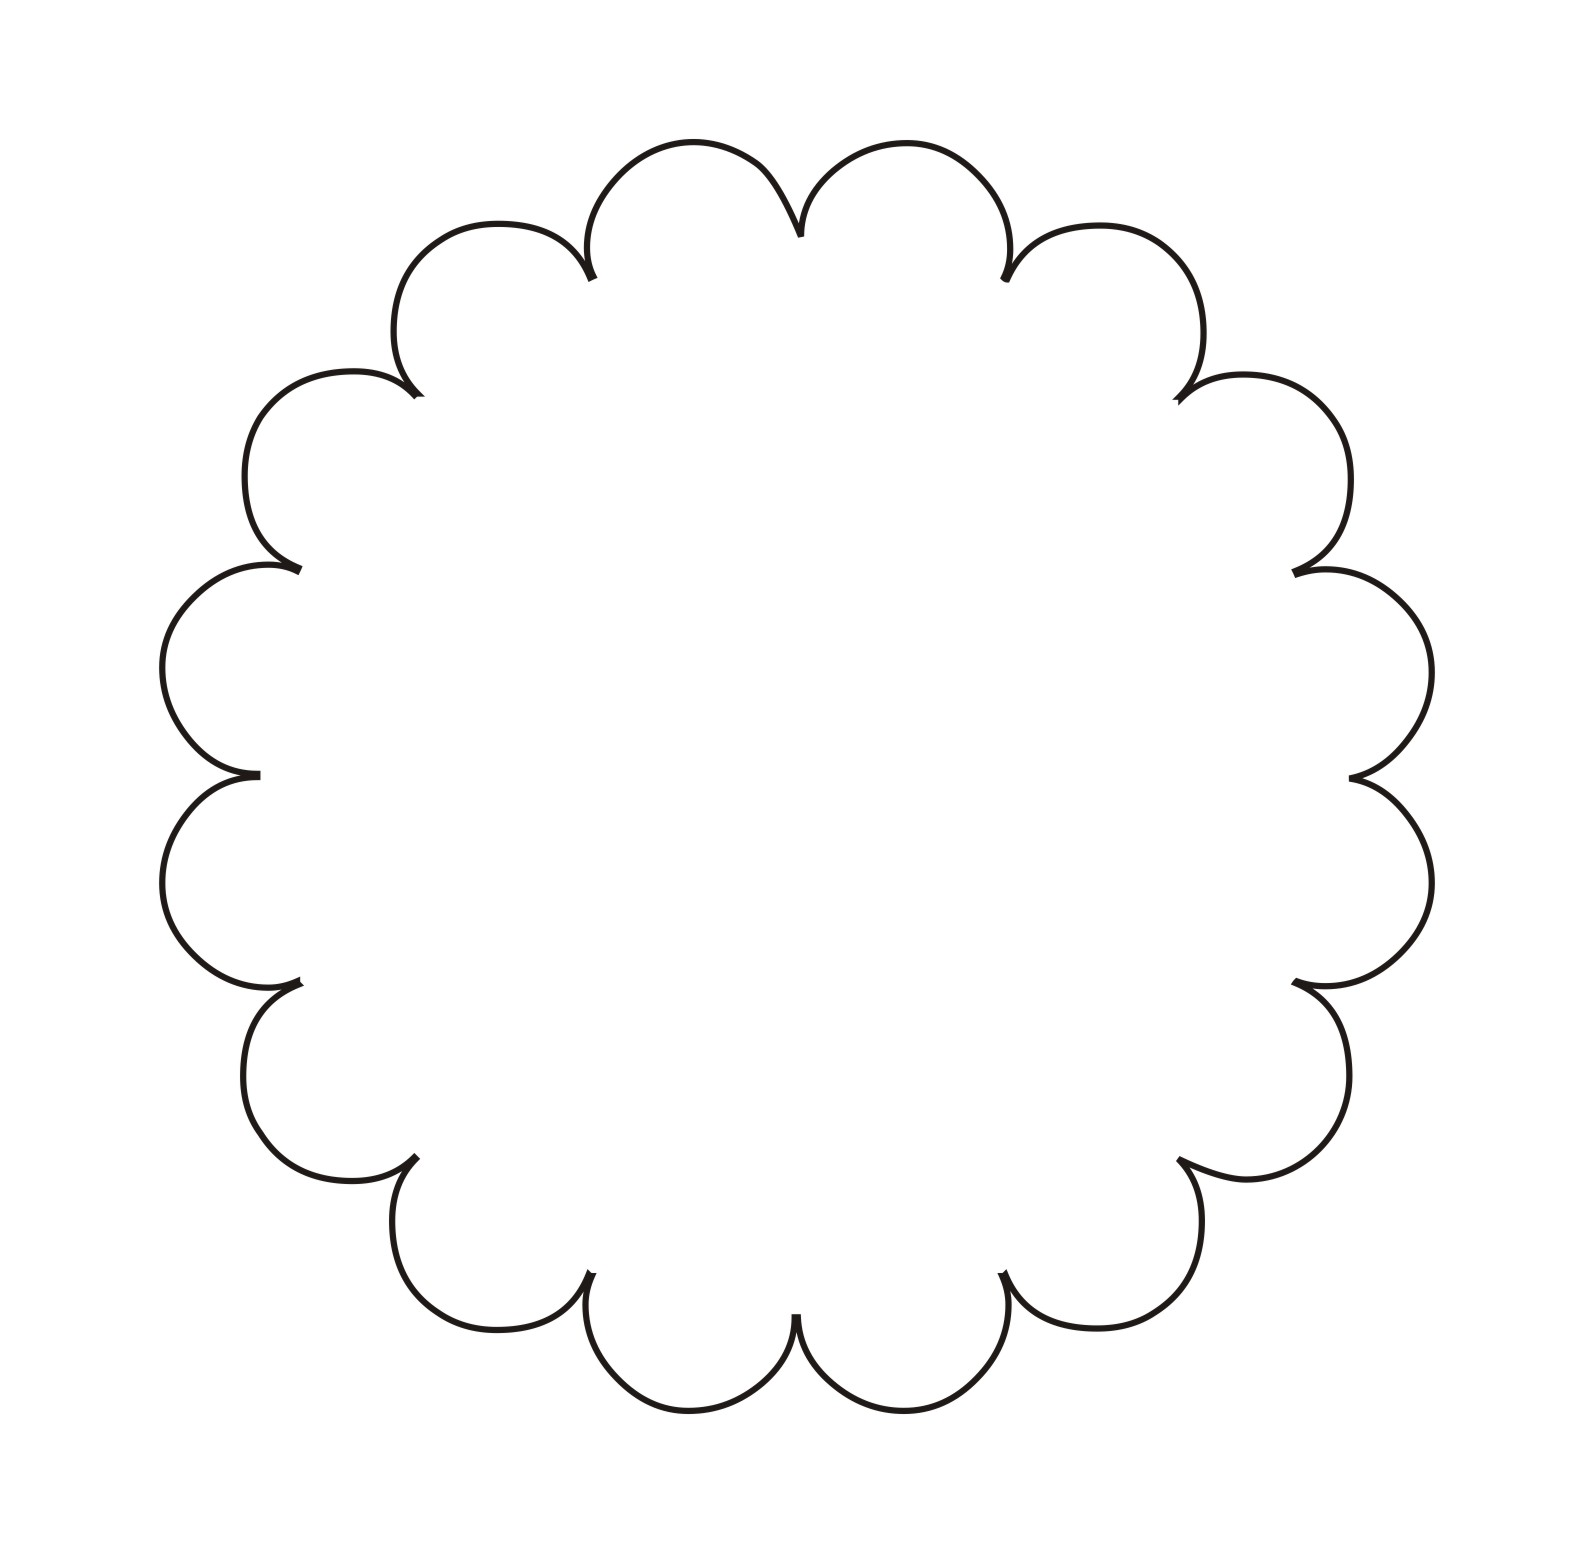 Scallop edge circle clipart black and white image library Free Scallop Cliparts, Download Free Clip Art, Free Clip Art ... image library